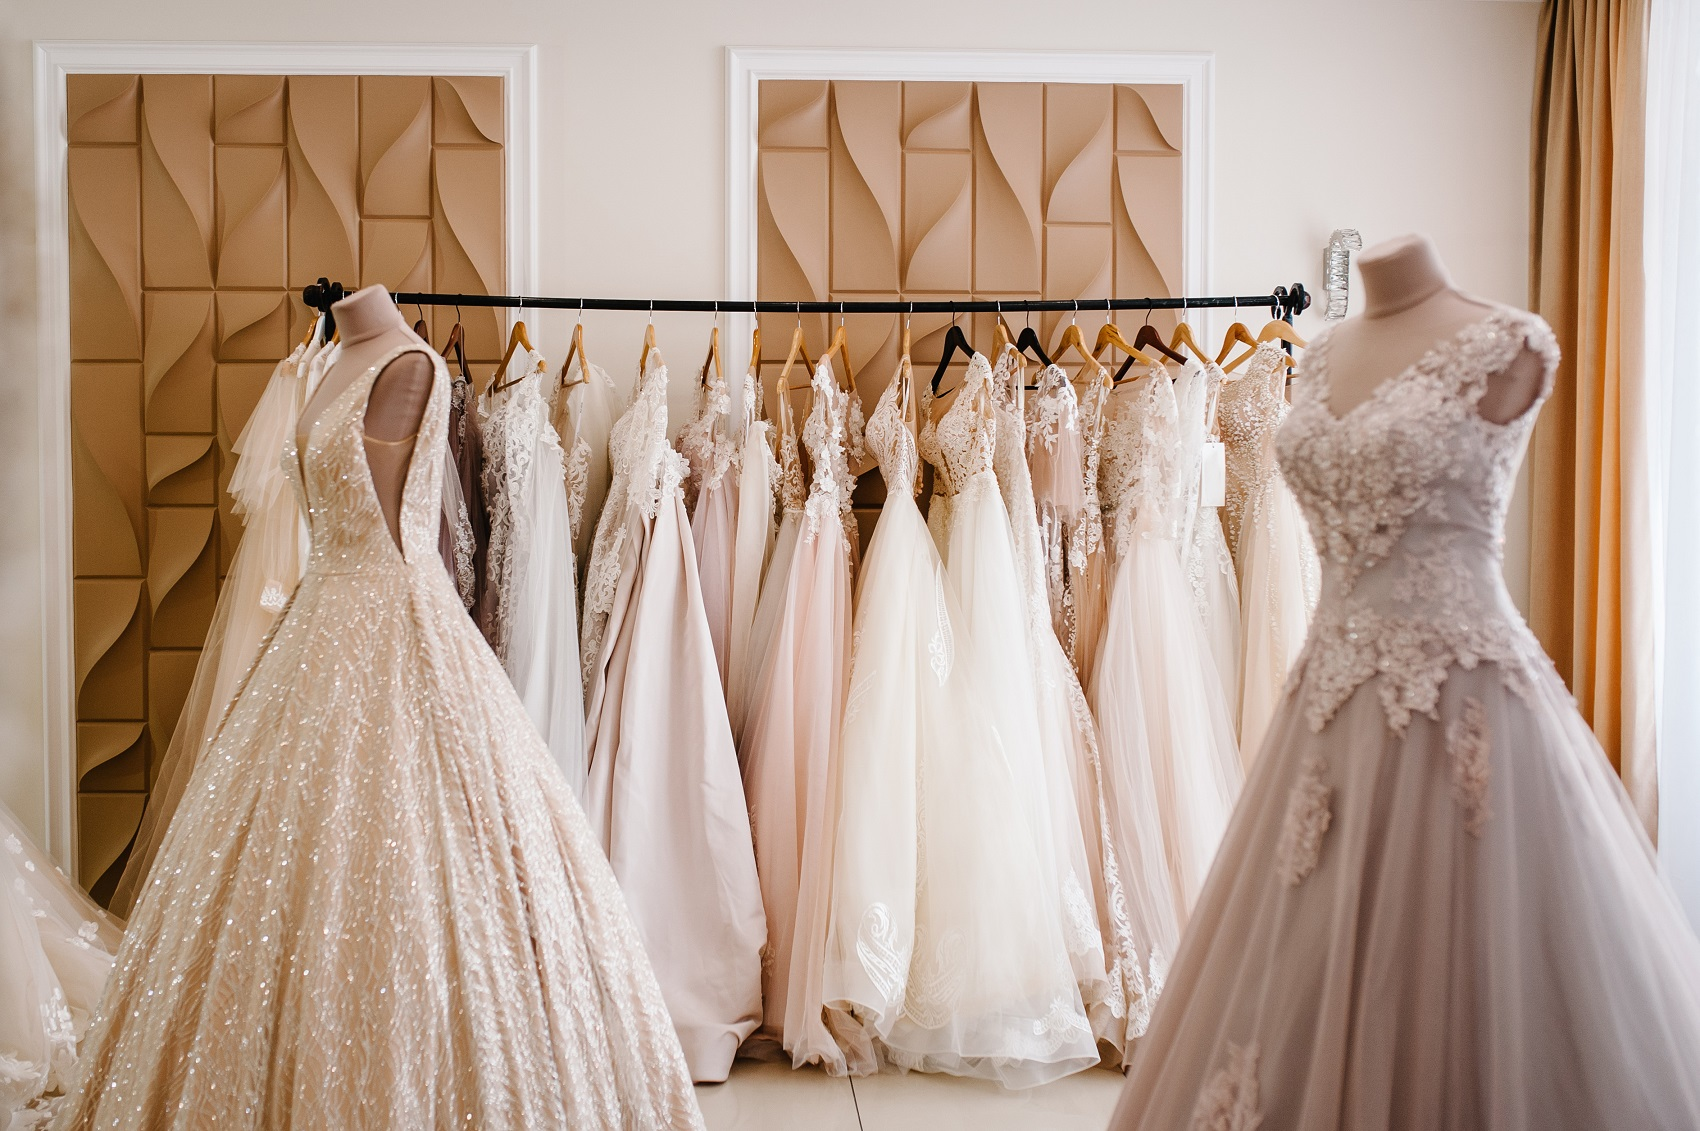 d60a90bb767 Best Bridal Consignment Shops Indianapolis